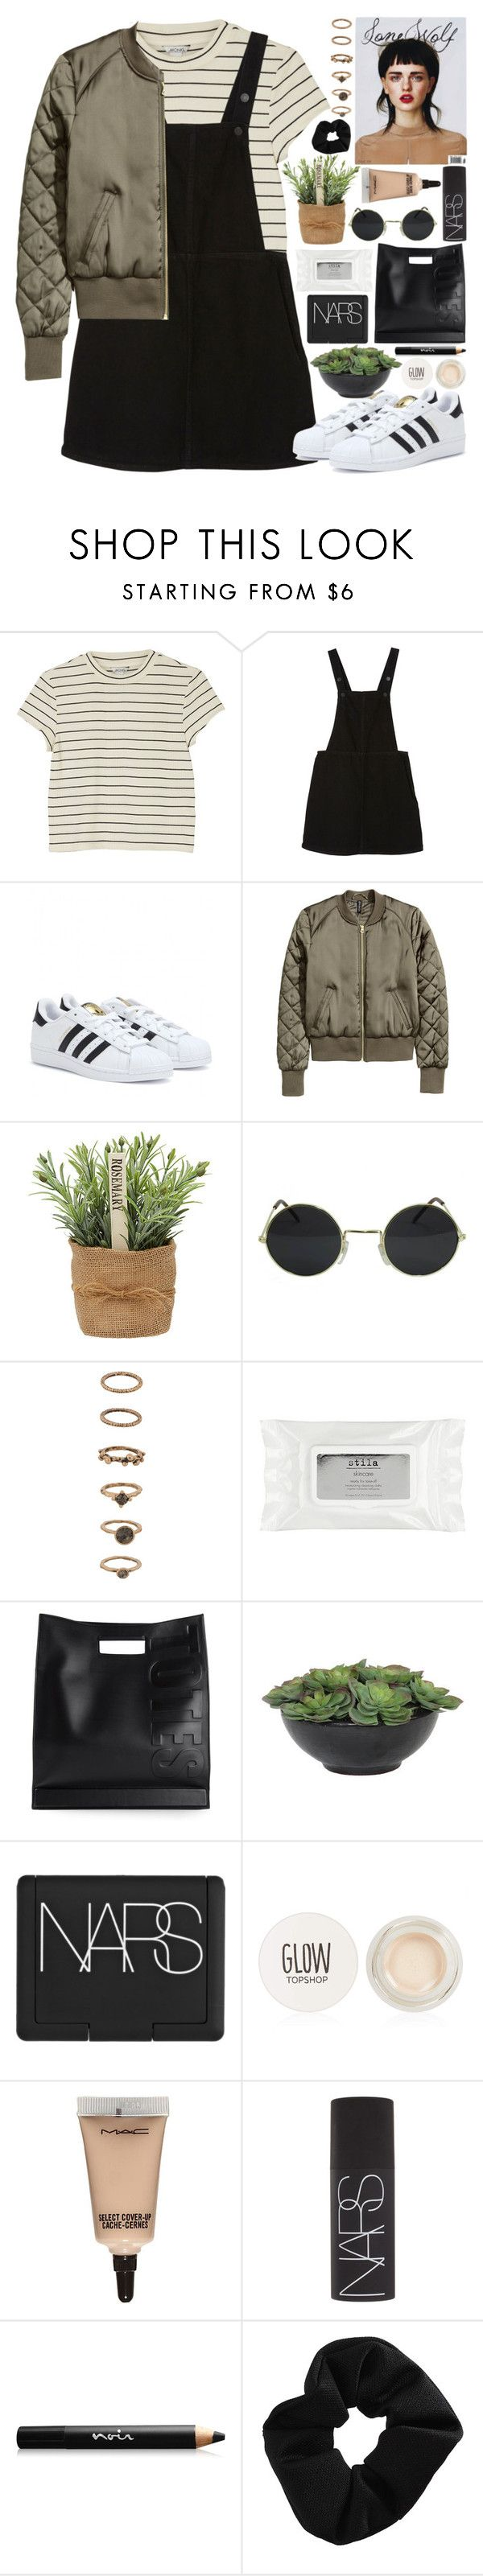 """"""".."""" by imthinkinginyou ❤ liked on Polyvore featuring Monki, adidas, Forever 21, Stila, 3.1 Phillip Lim, Lux-Art Silks, NARS Cosmetics, Topshop, MAC Cosmetics and Noir Cosmetics"""